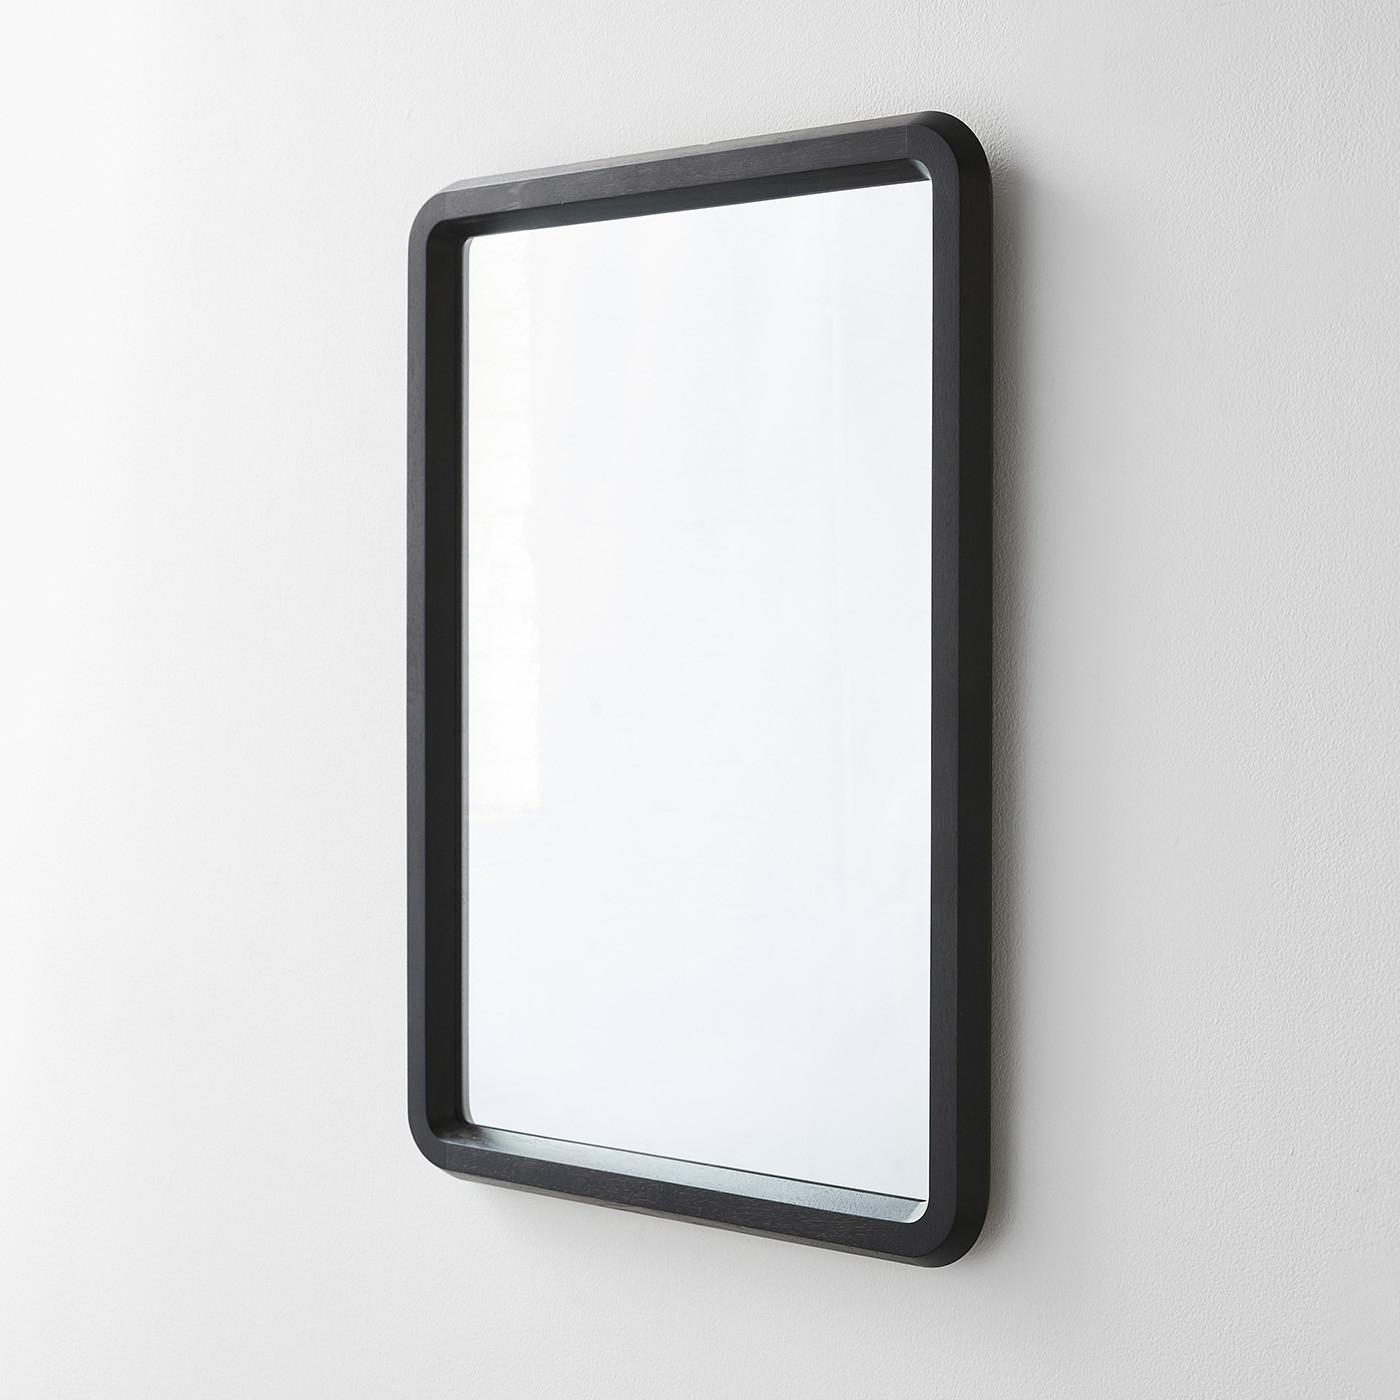 2019 Edgewood Made Large Wall Mirror Black With Regard To Large Plastic Wall Mirrors (View 18 of 20)